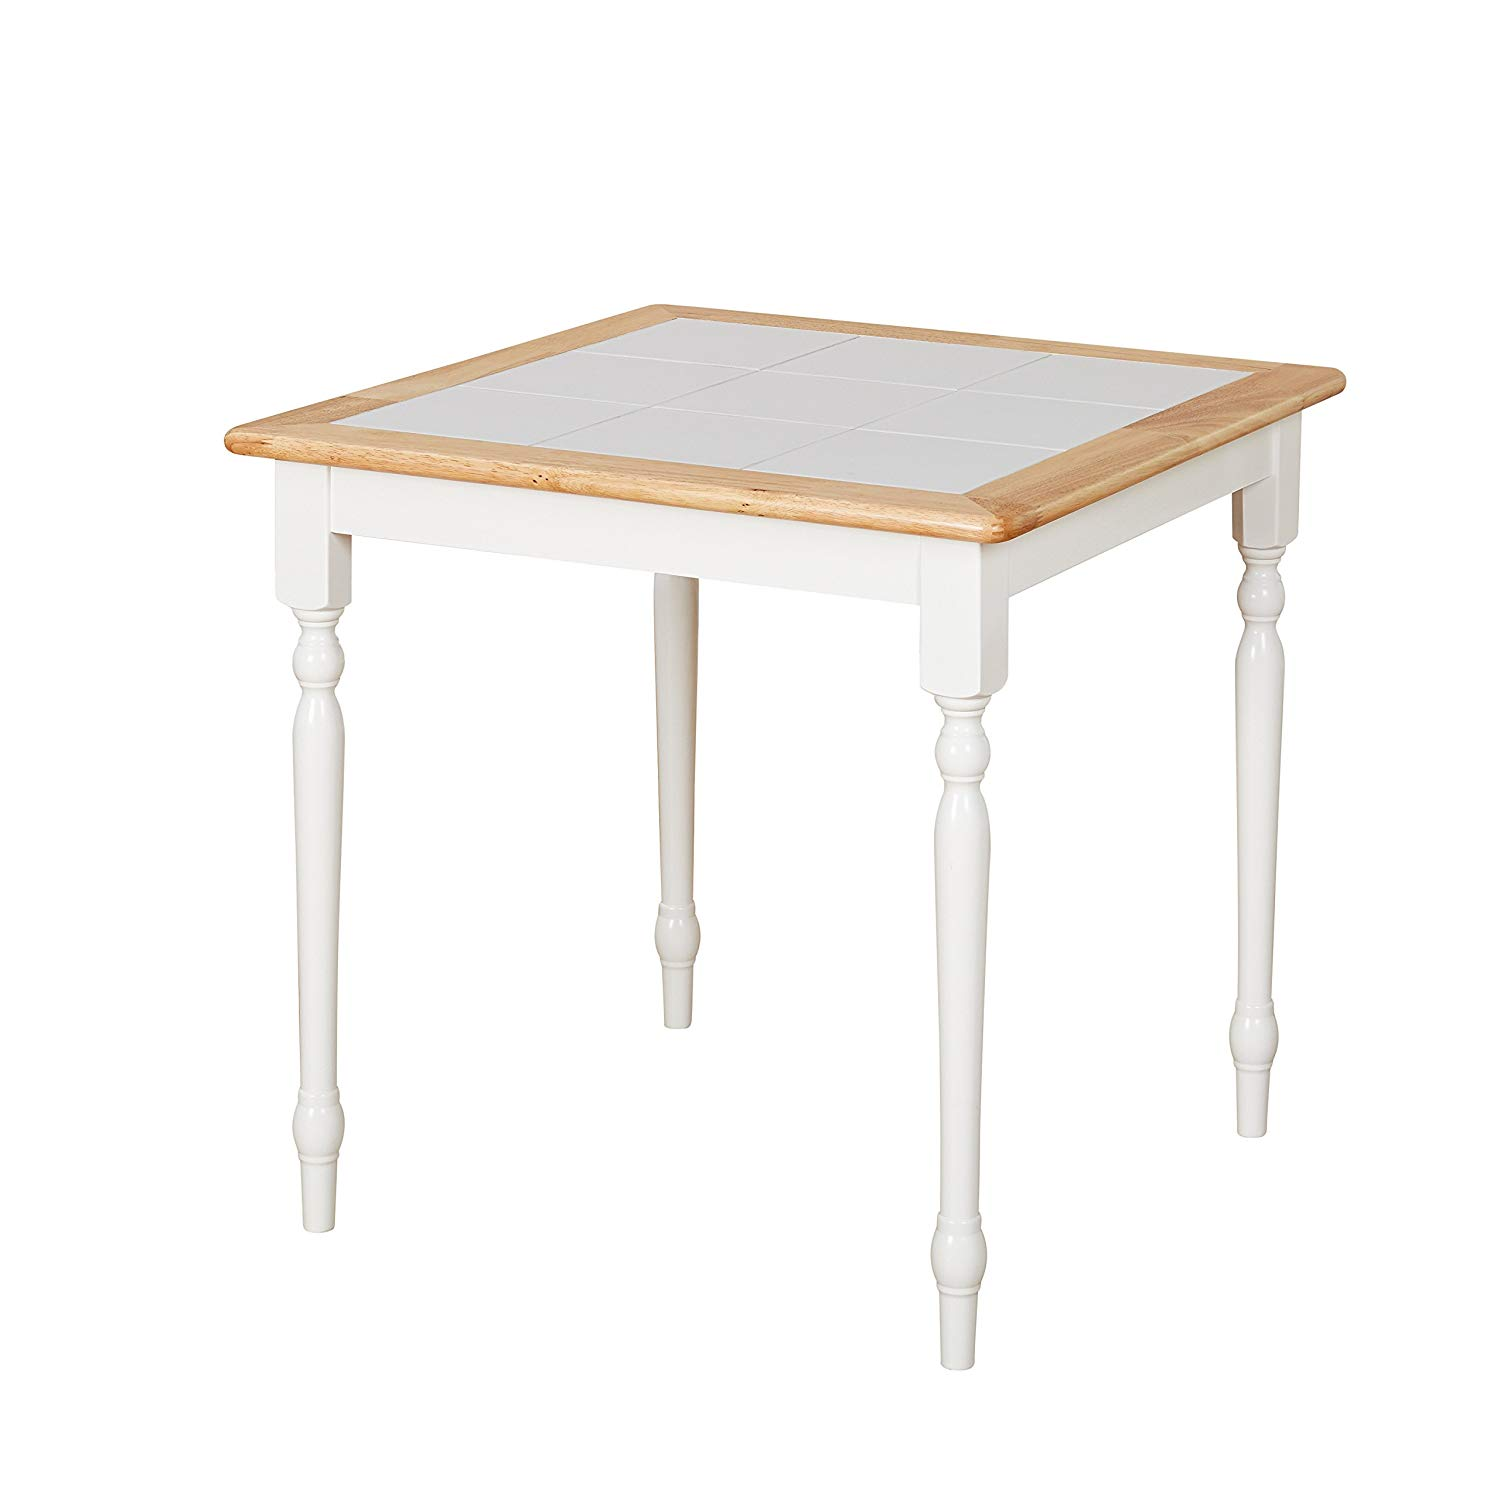 Get Quotations Elegant Dining Table Seats 2 People Comfortably Sy And Long Lasting Solid Wood Construction